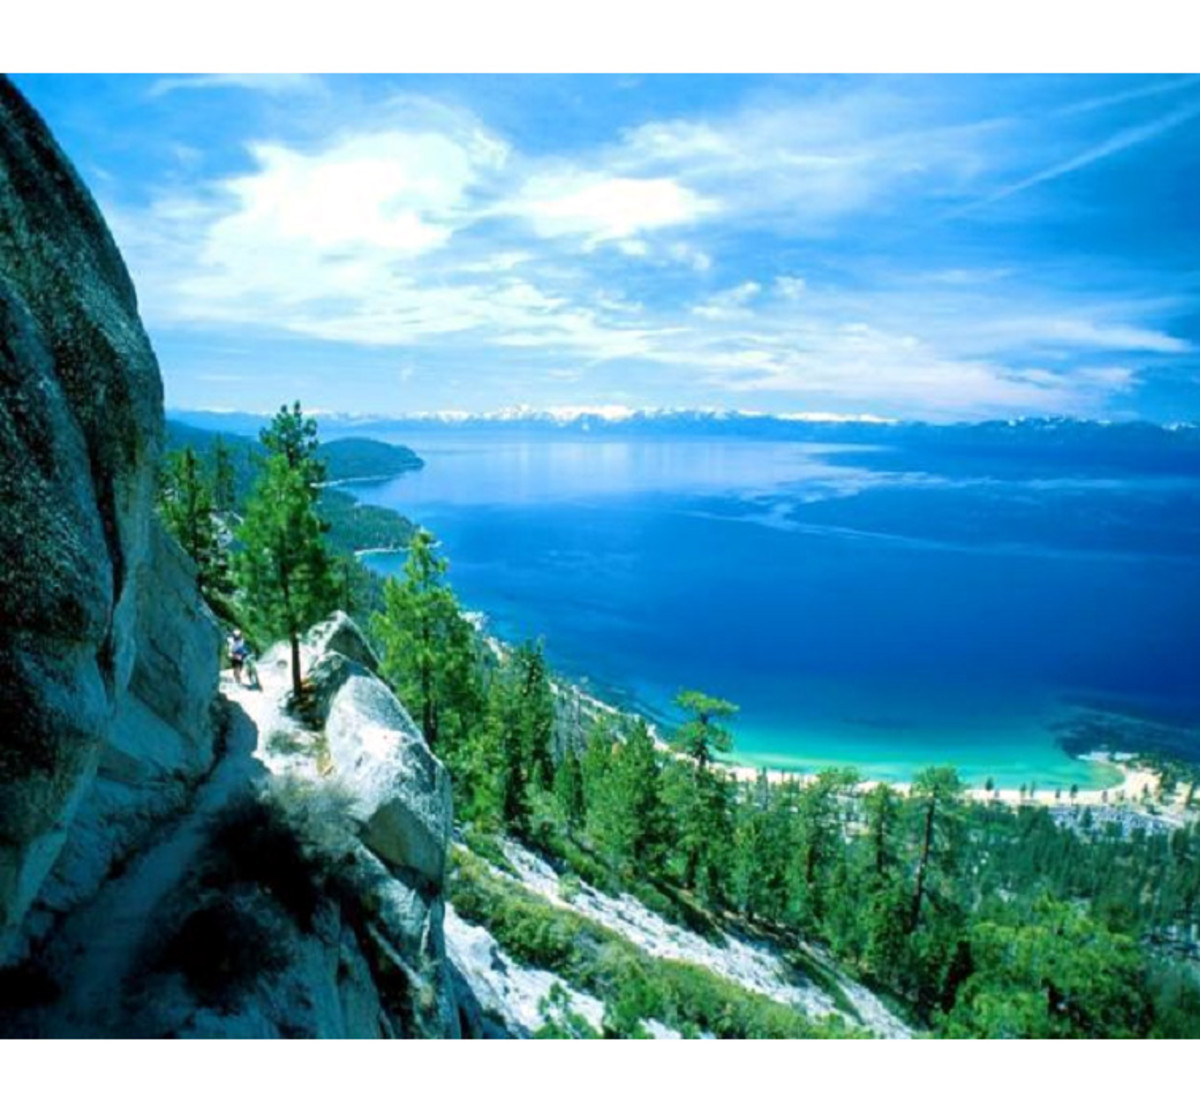 Lake Tahoe - Top 10 Things to do!